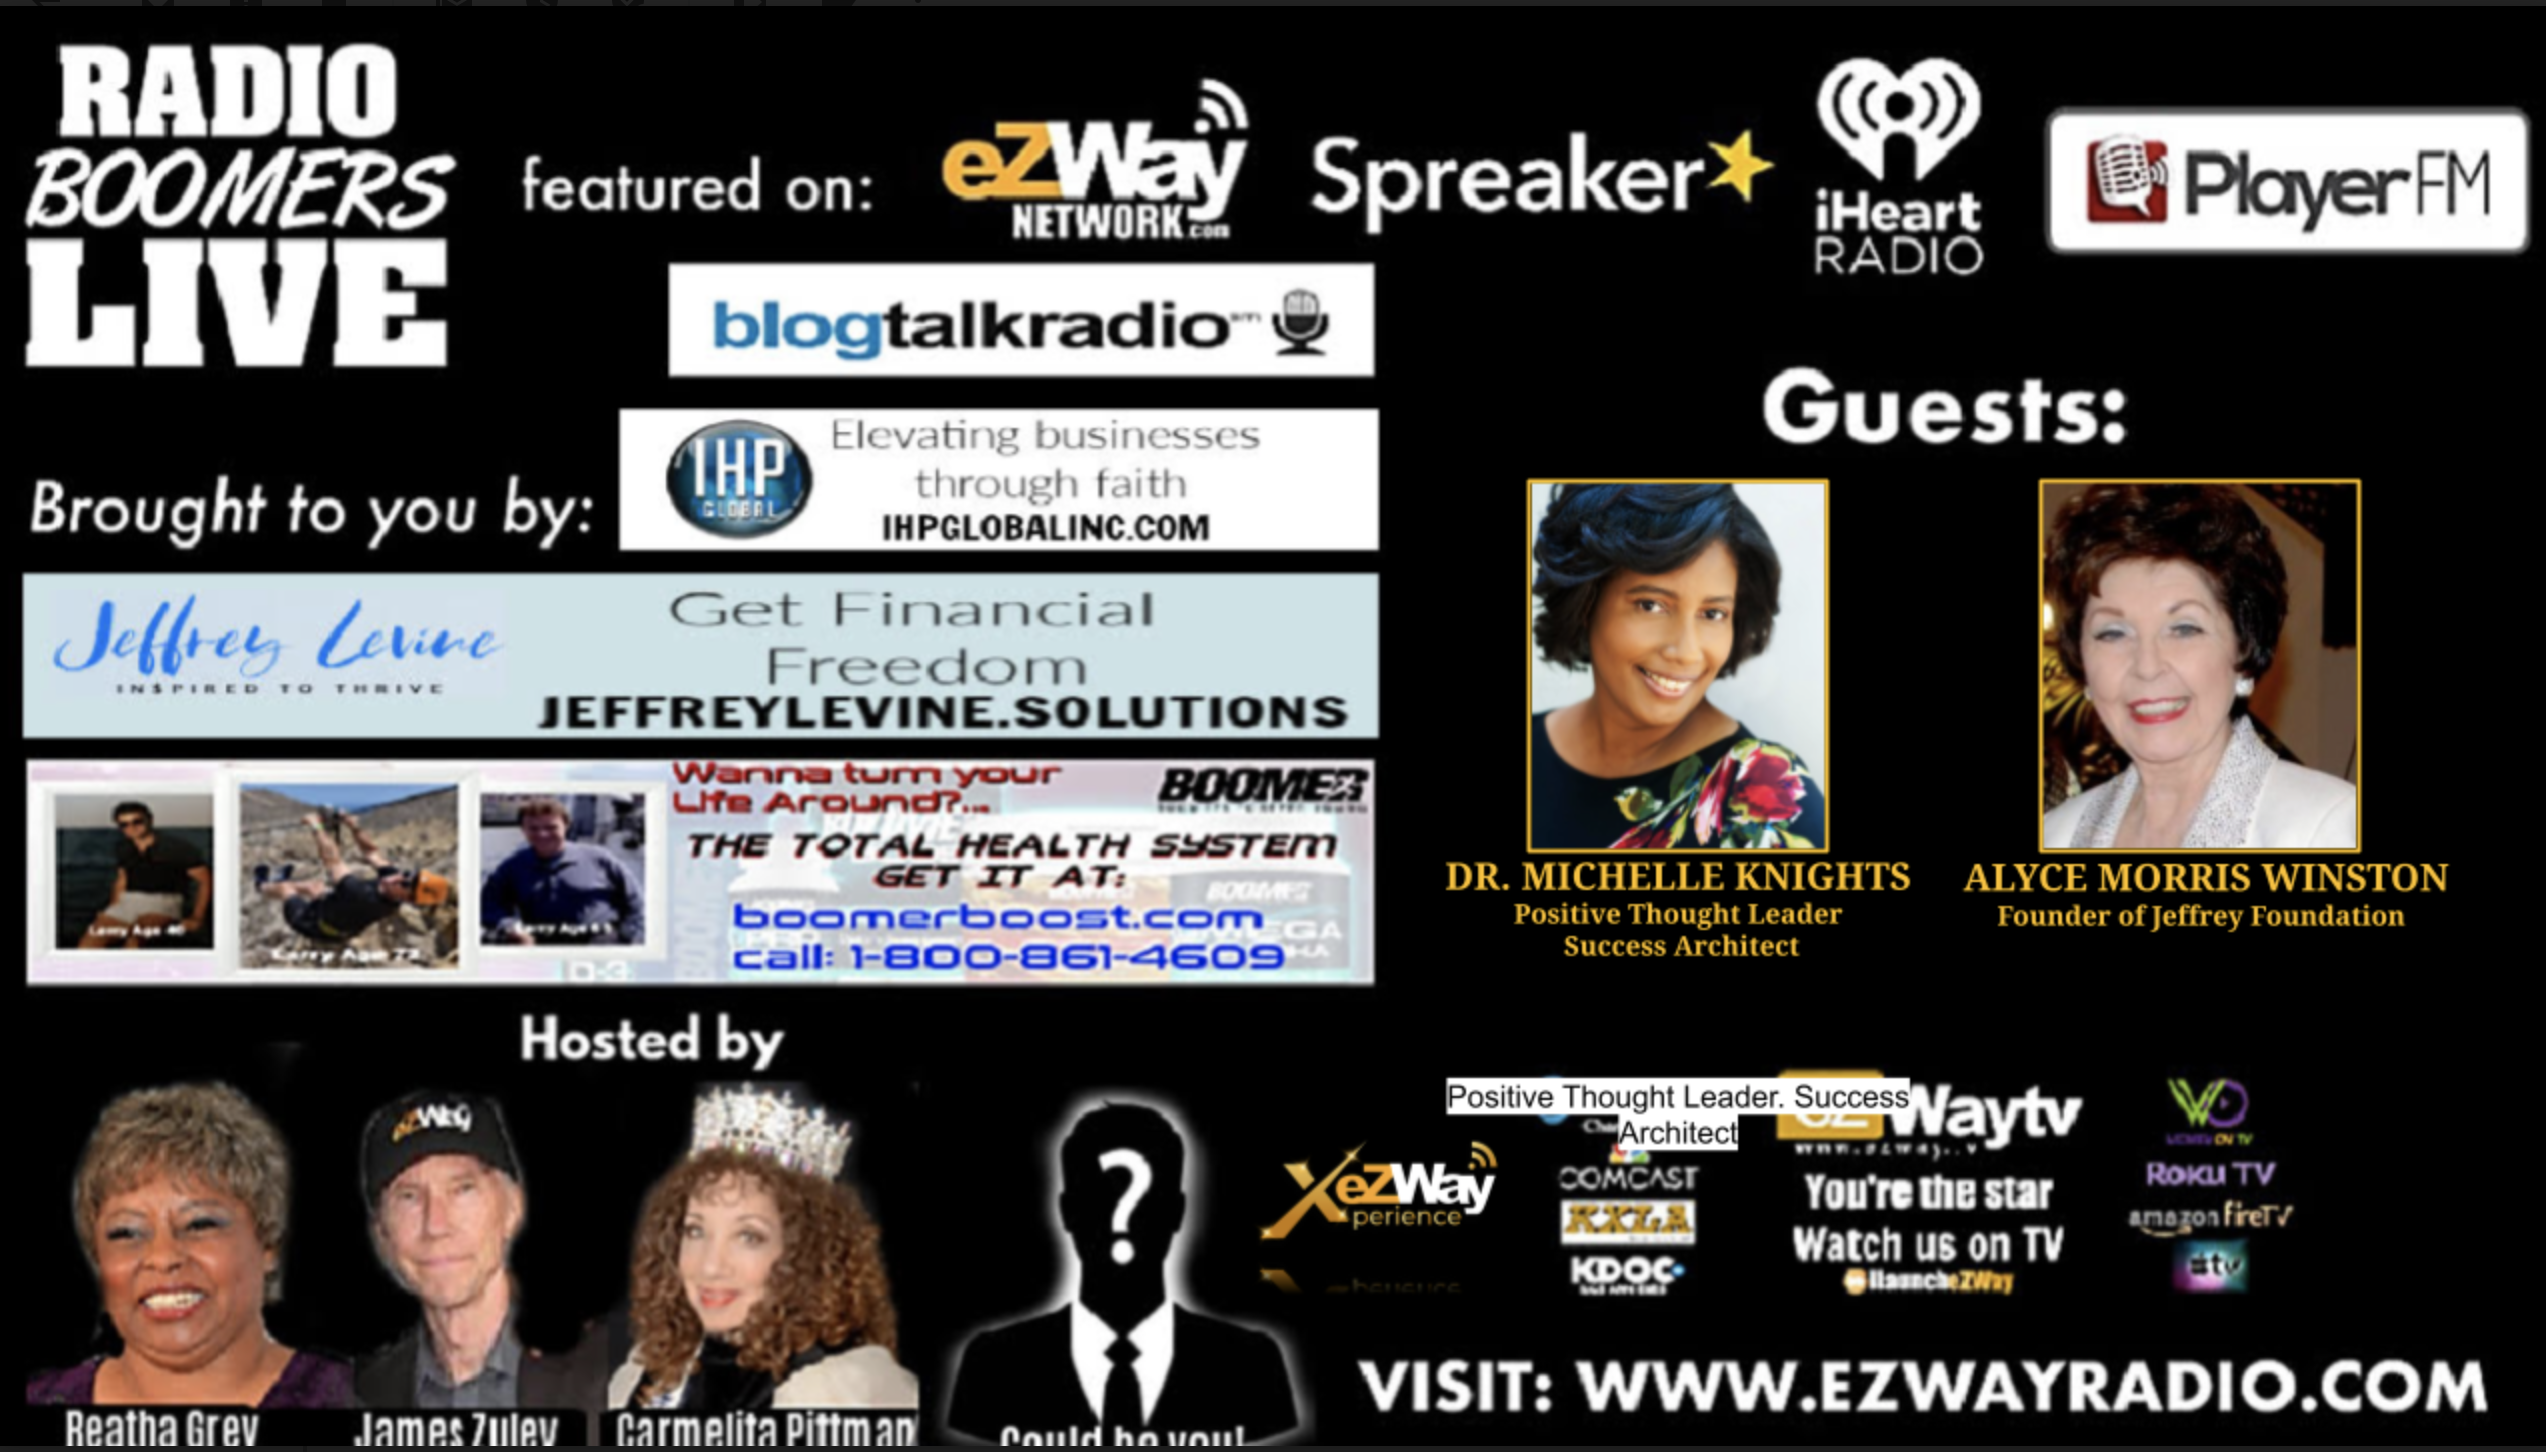 RBL LIVE Feat. Dr. Michelle Knights and Alyce Morris Winston